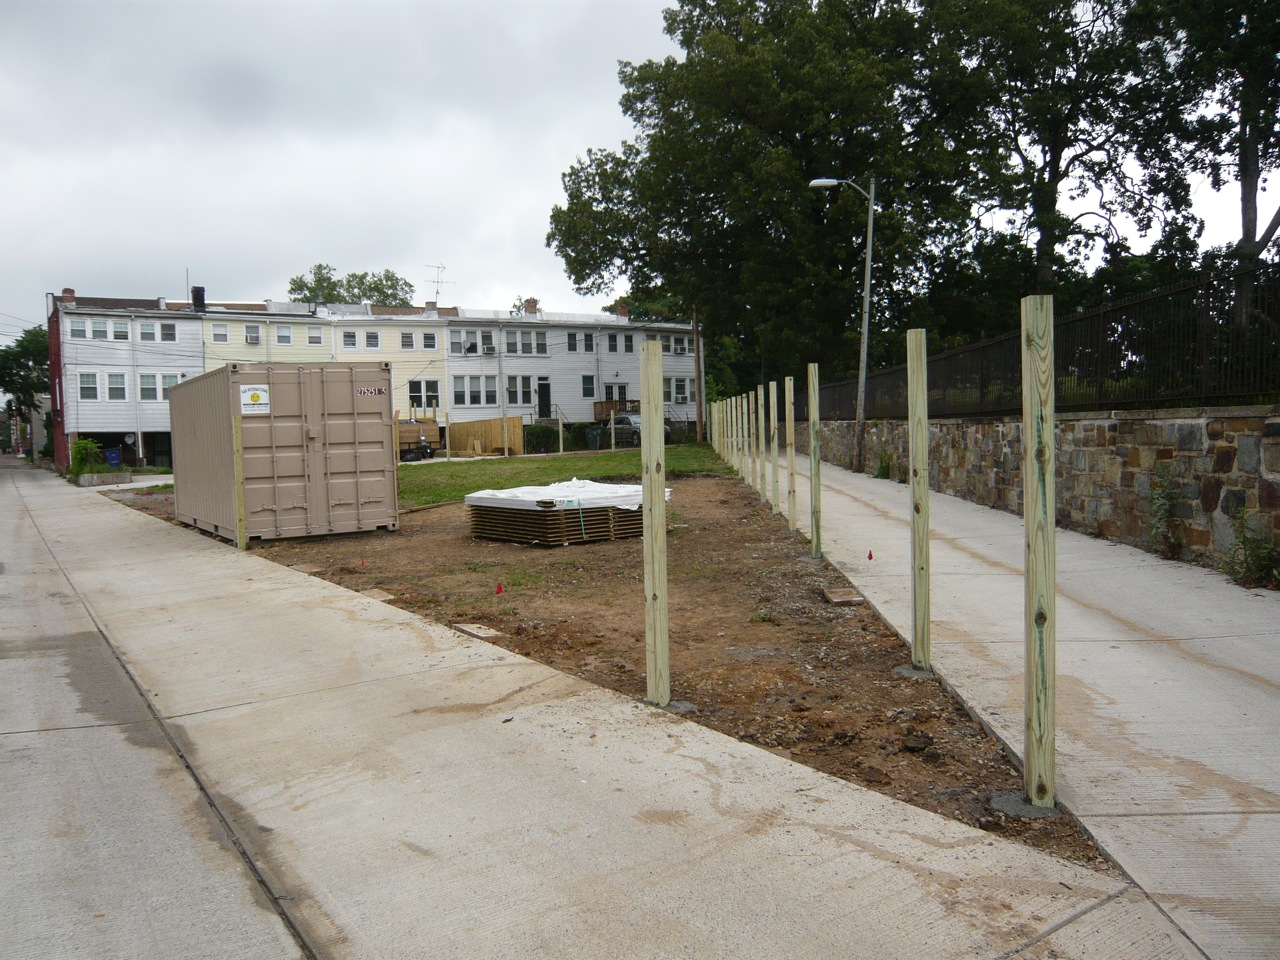 Fence posts on the lot with view of future garden bed area in foreground